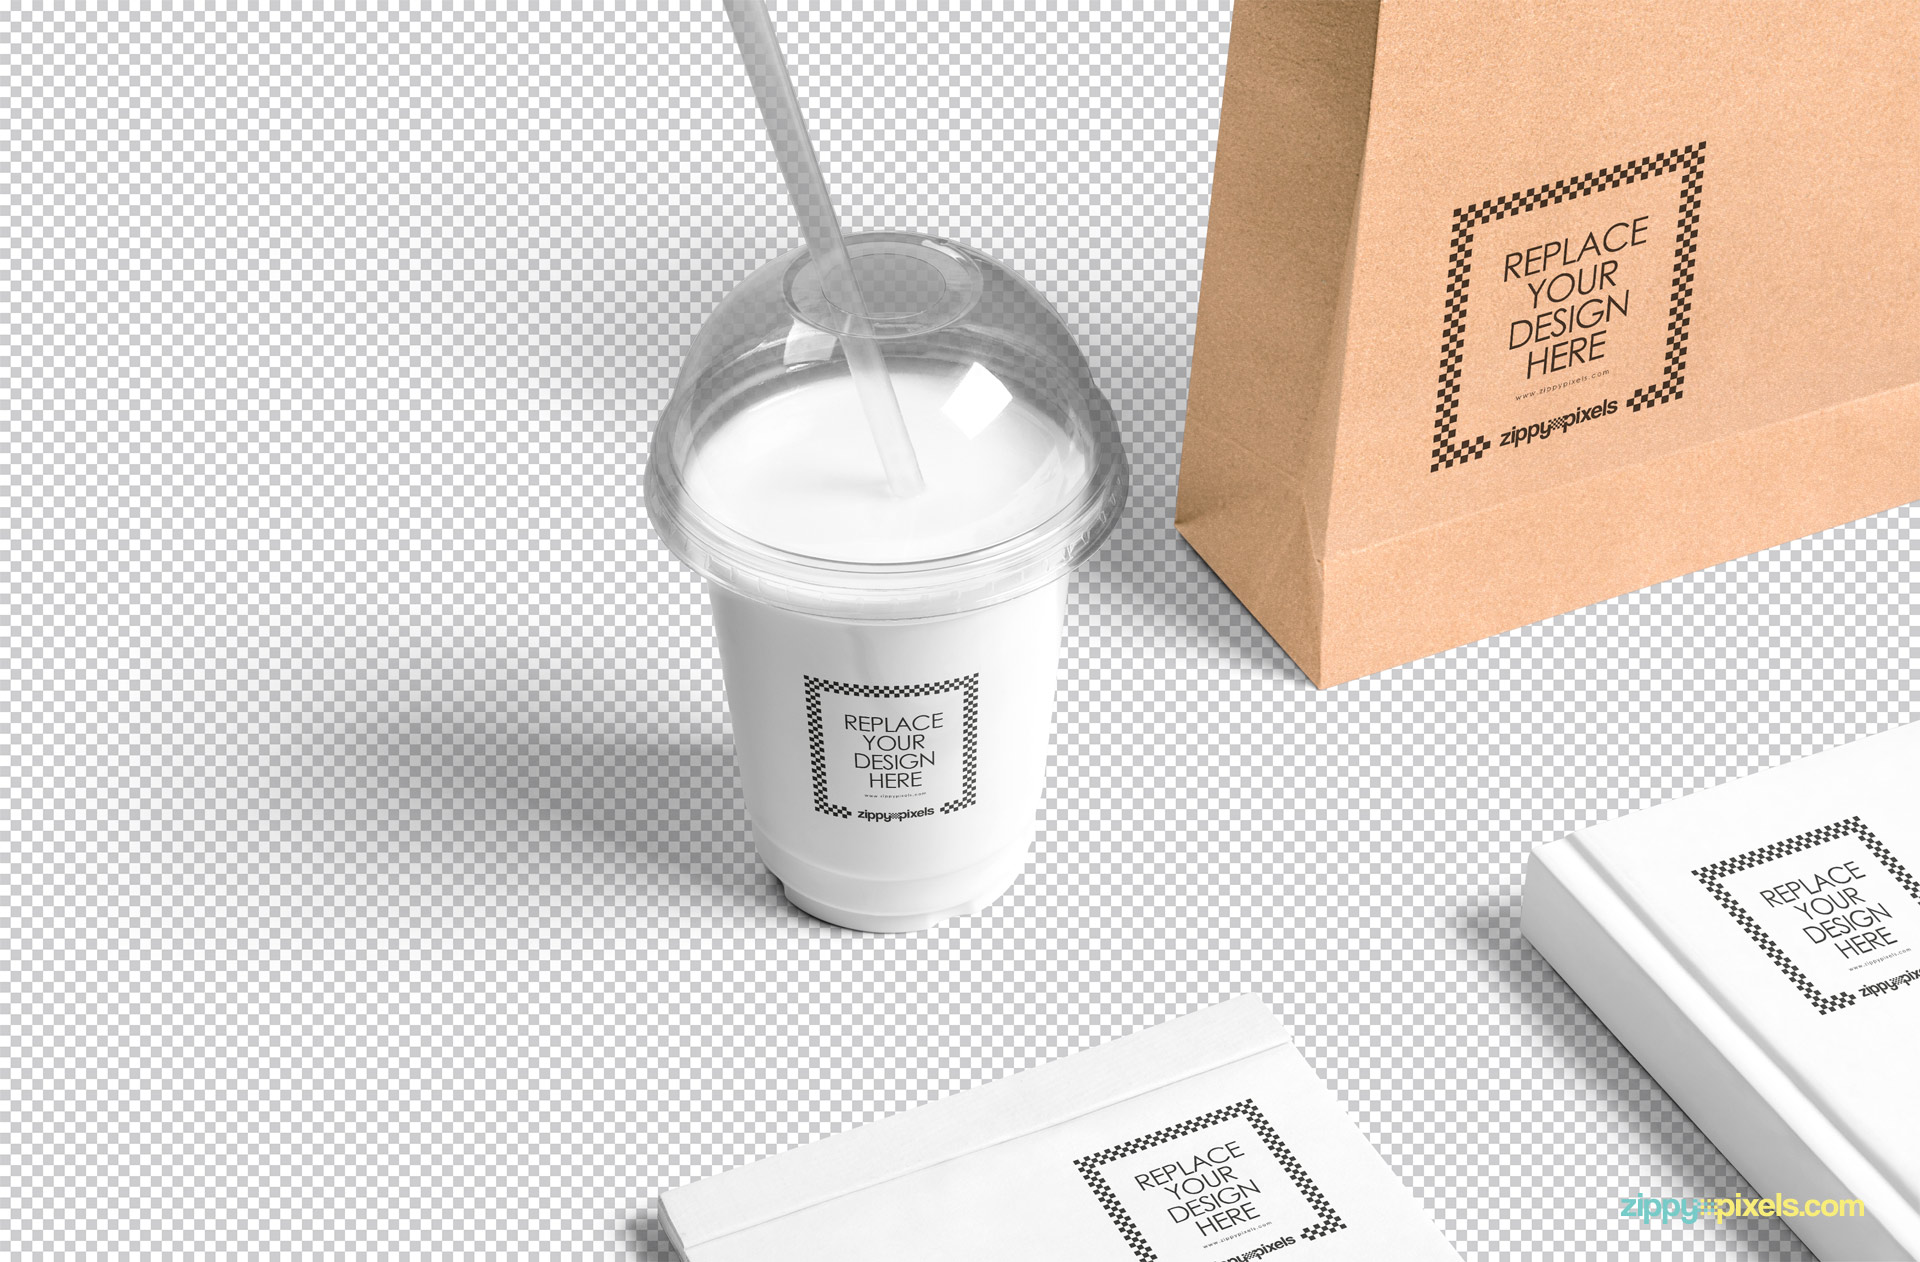 Just use Photoshop to place your designs in this blank plastic cup mockup scene.